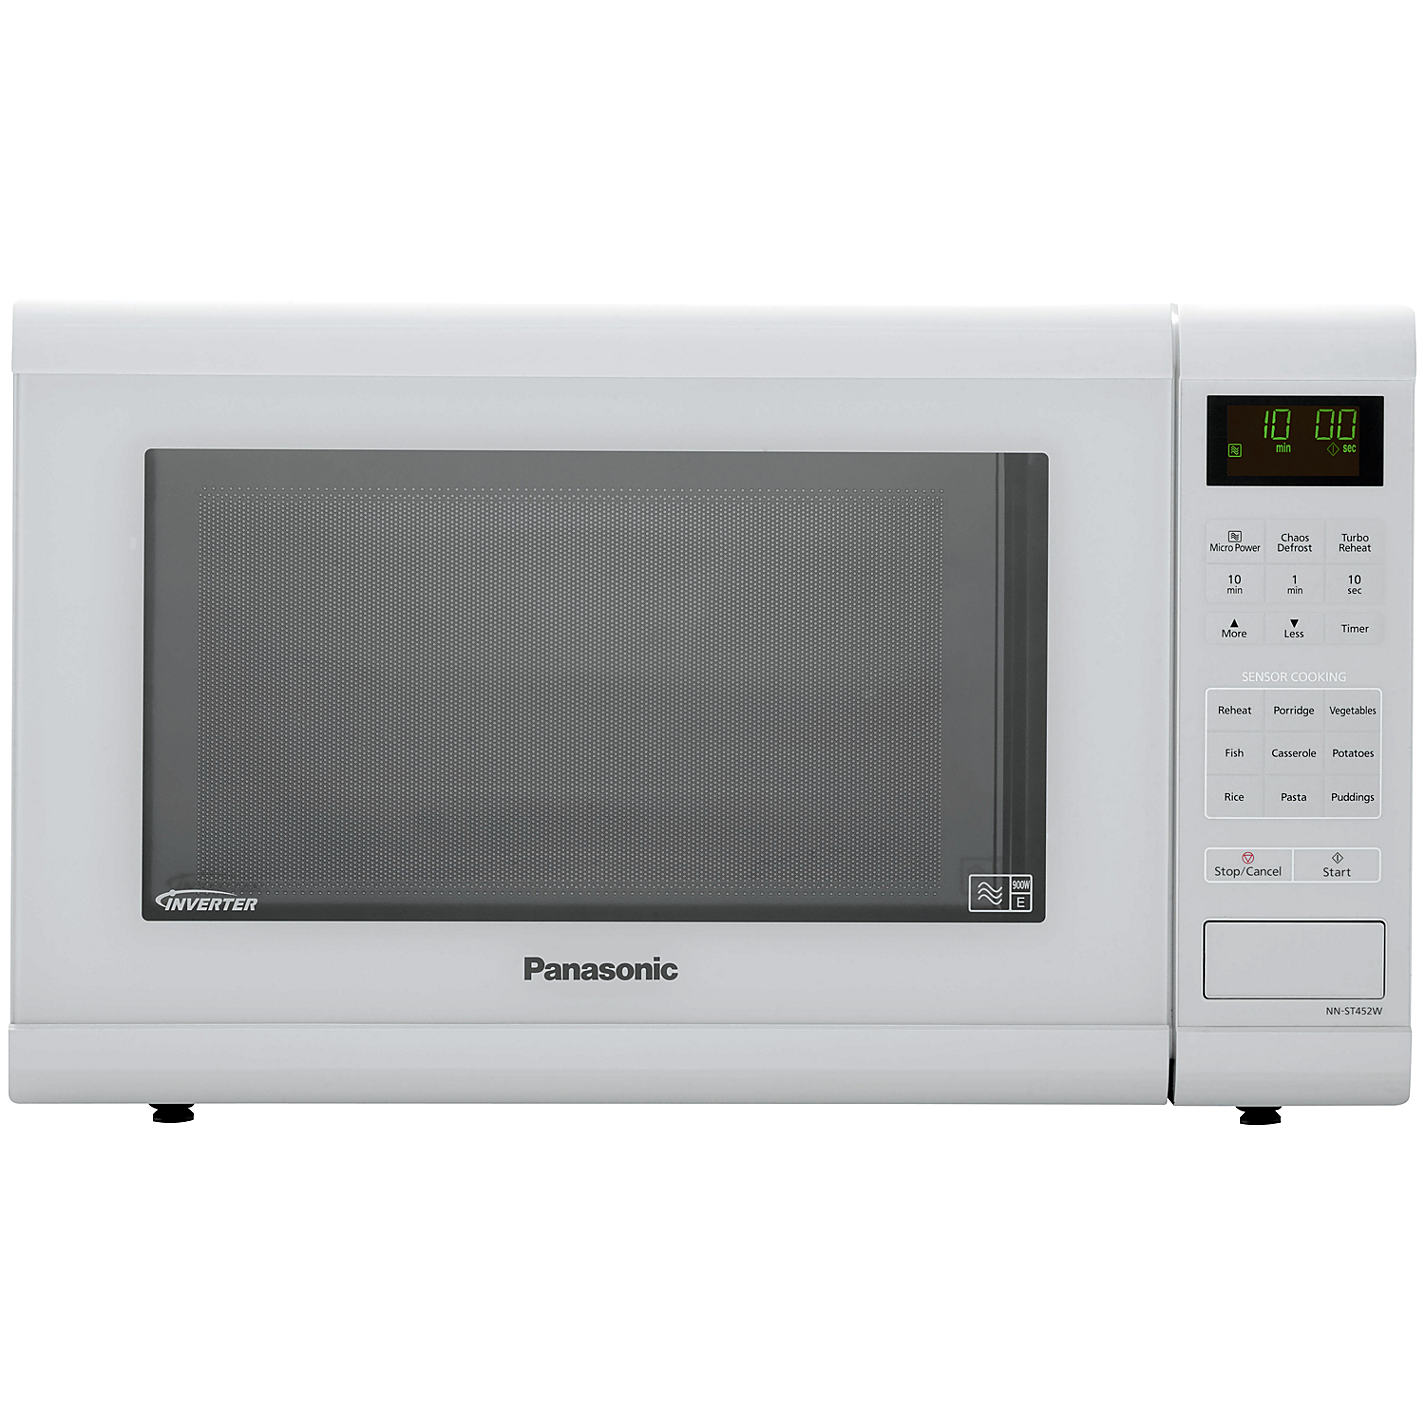 Panasonic Nn St452wbpq Microwave Oven White Online At Johnlewis